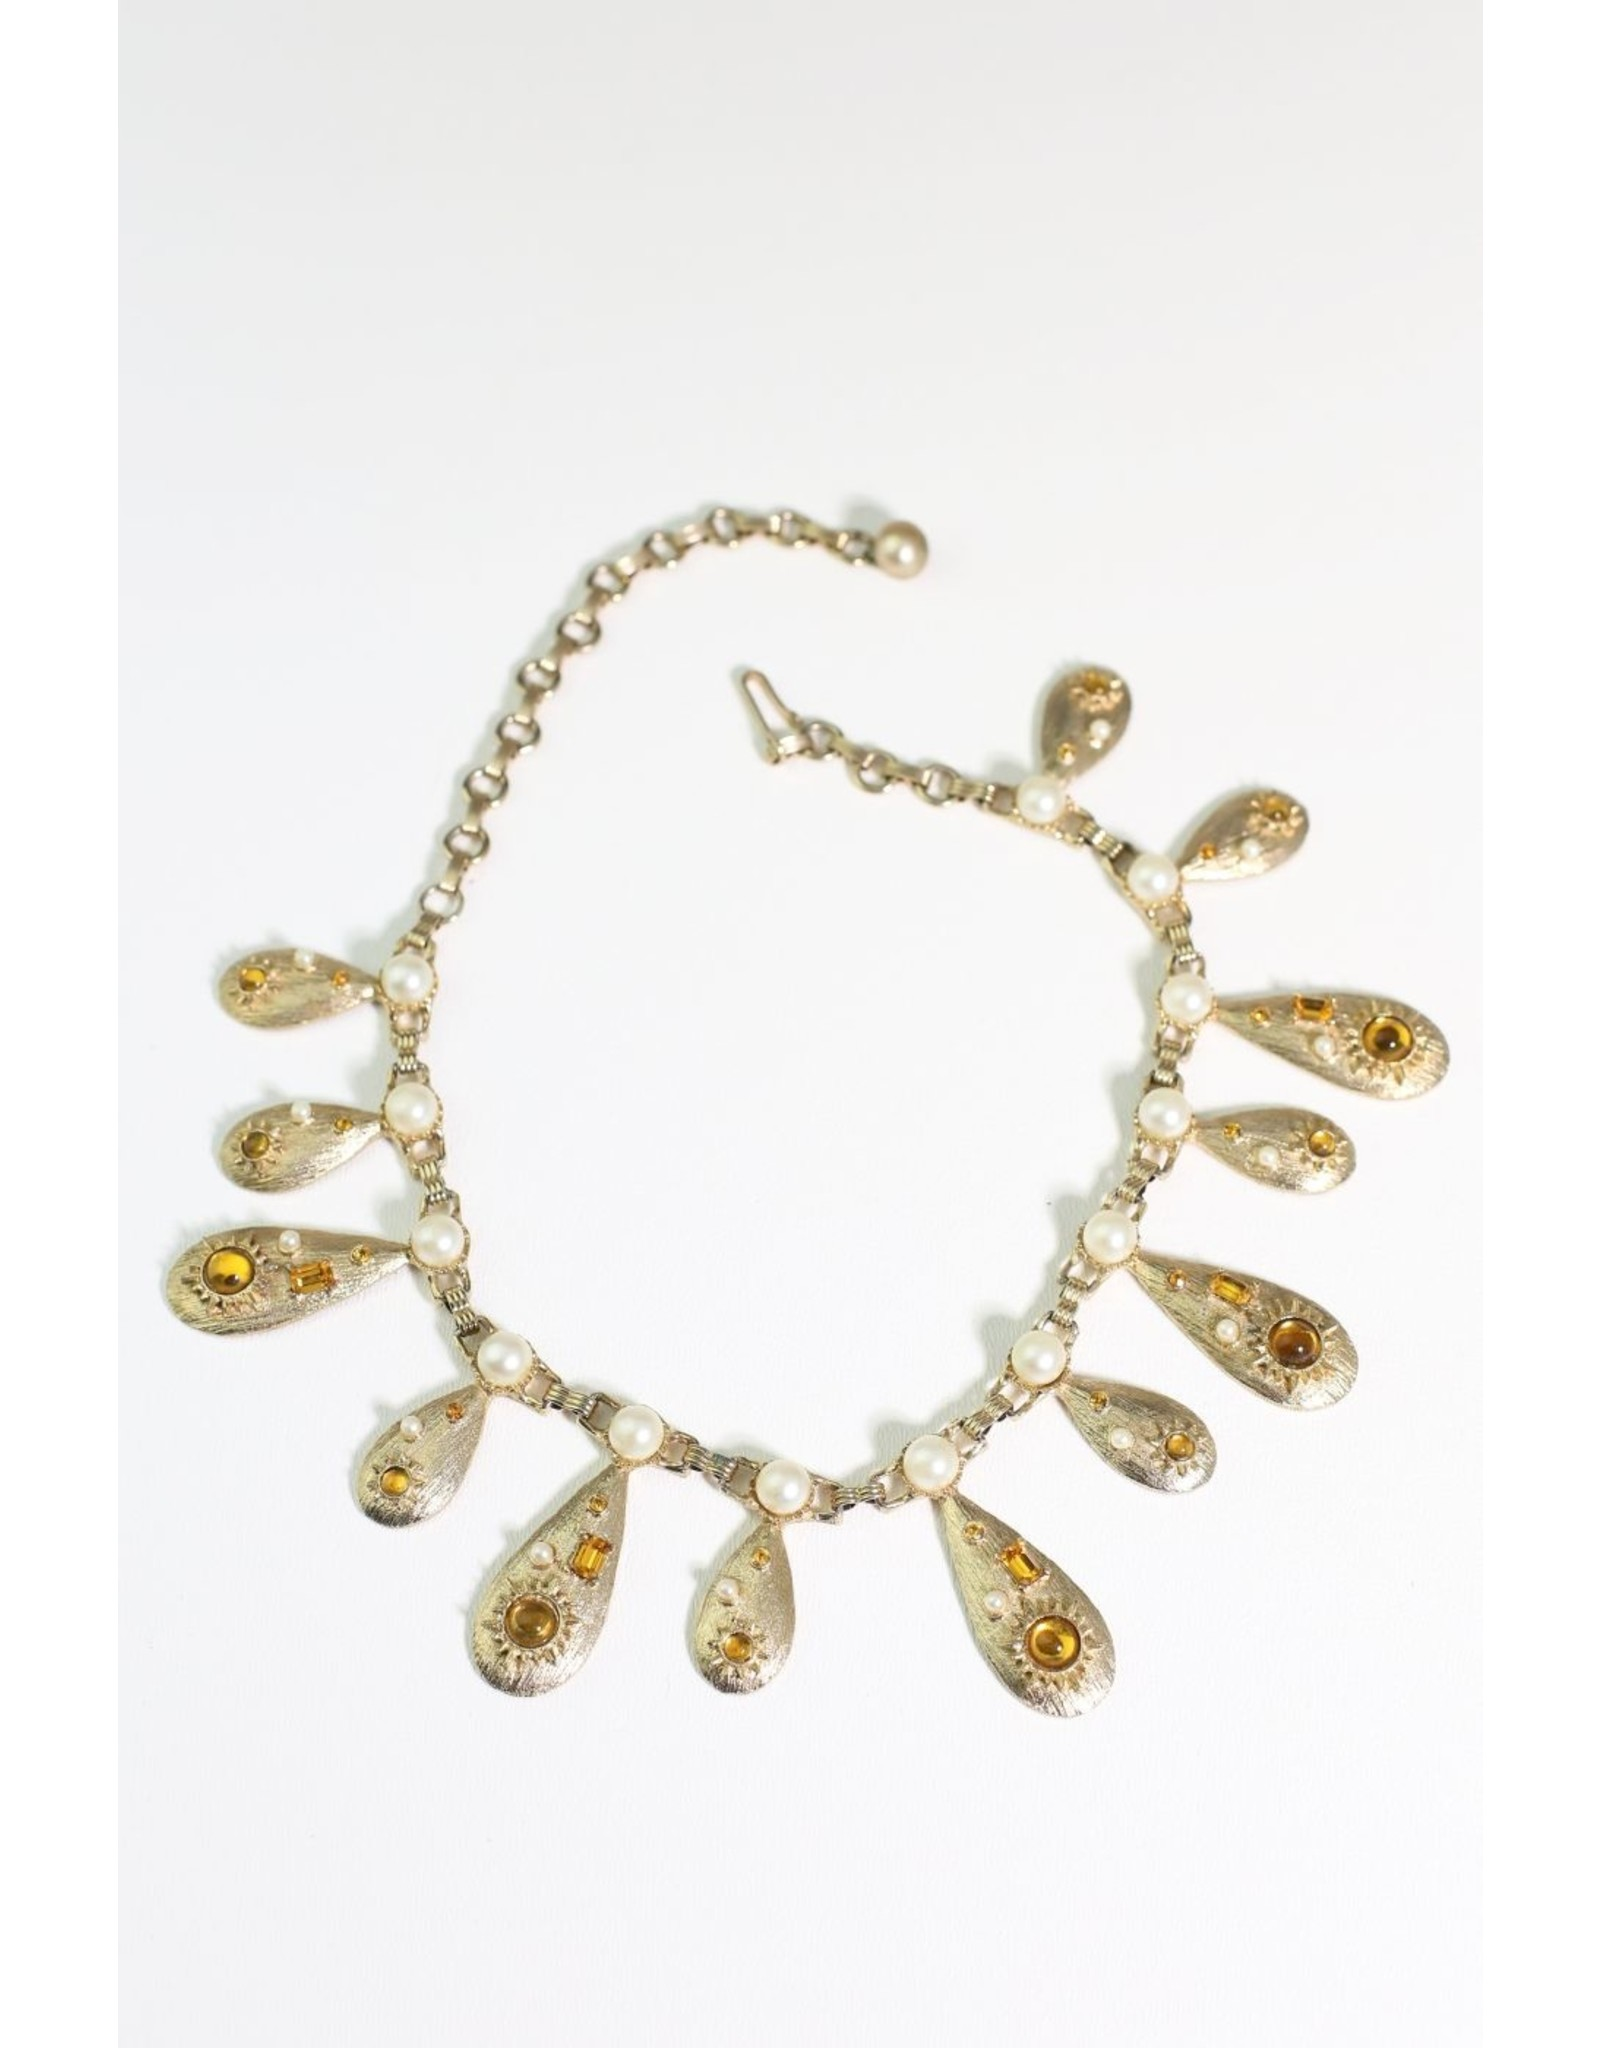 1960's Gold Art Deco Drop Necklace